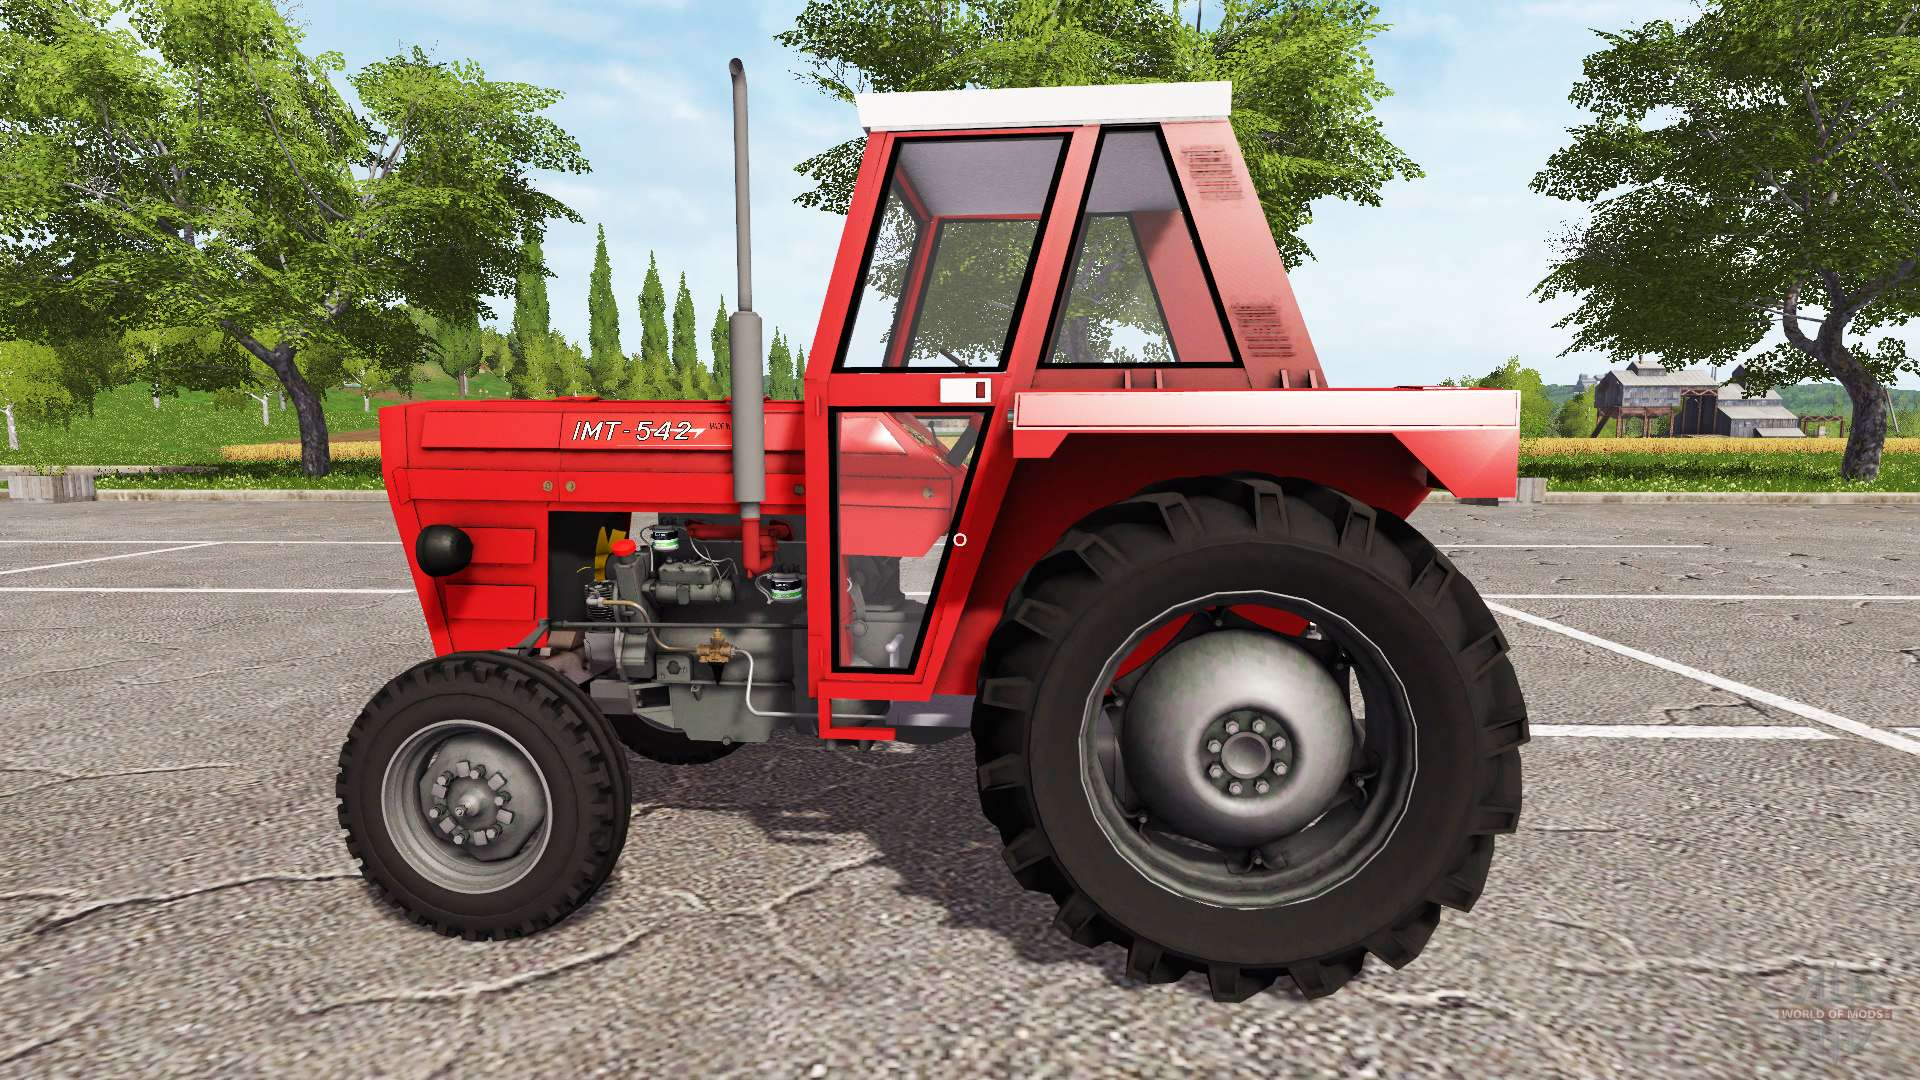 imt 542 deluxe v1 1 for farming simulator 2017 rh worldofmods com IMT 539 Deluxe Tractor IMT 539 Tractor Parts